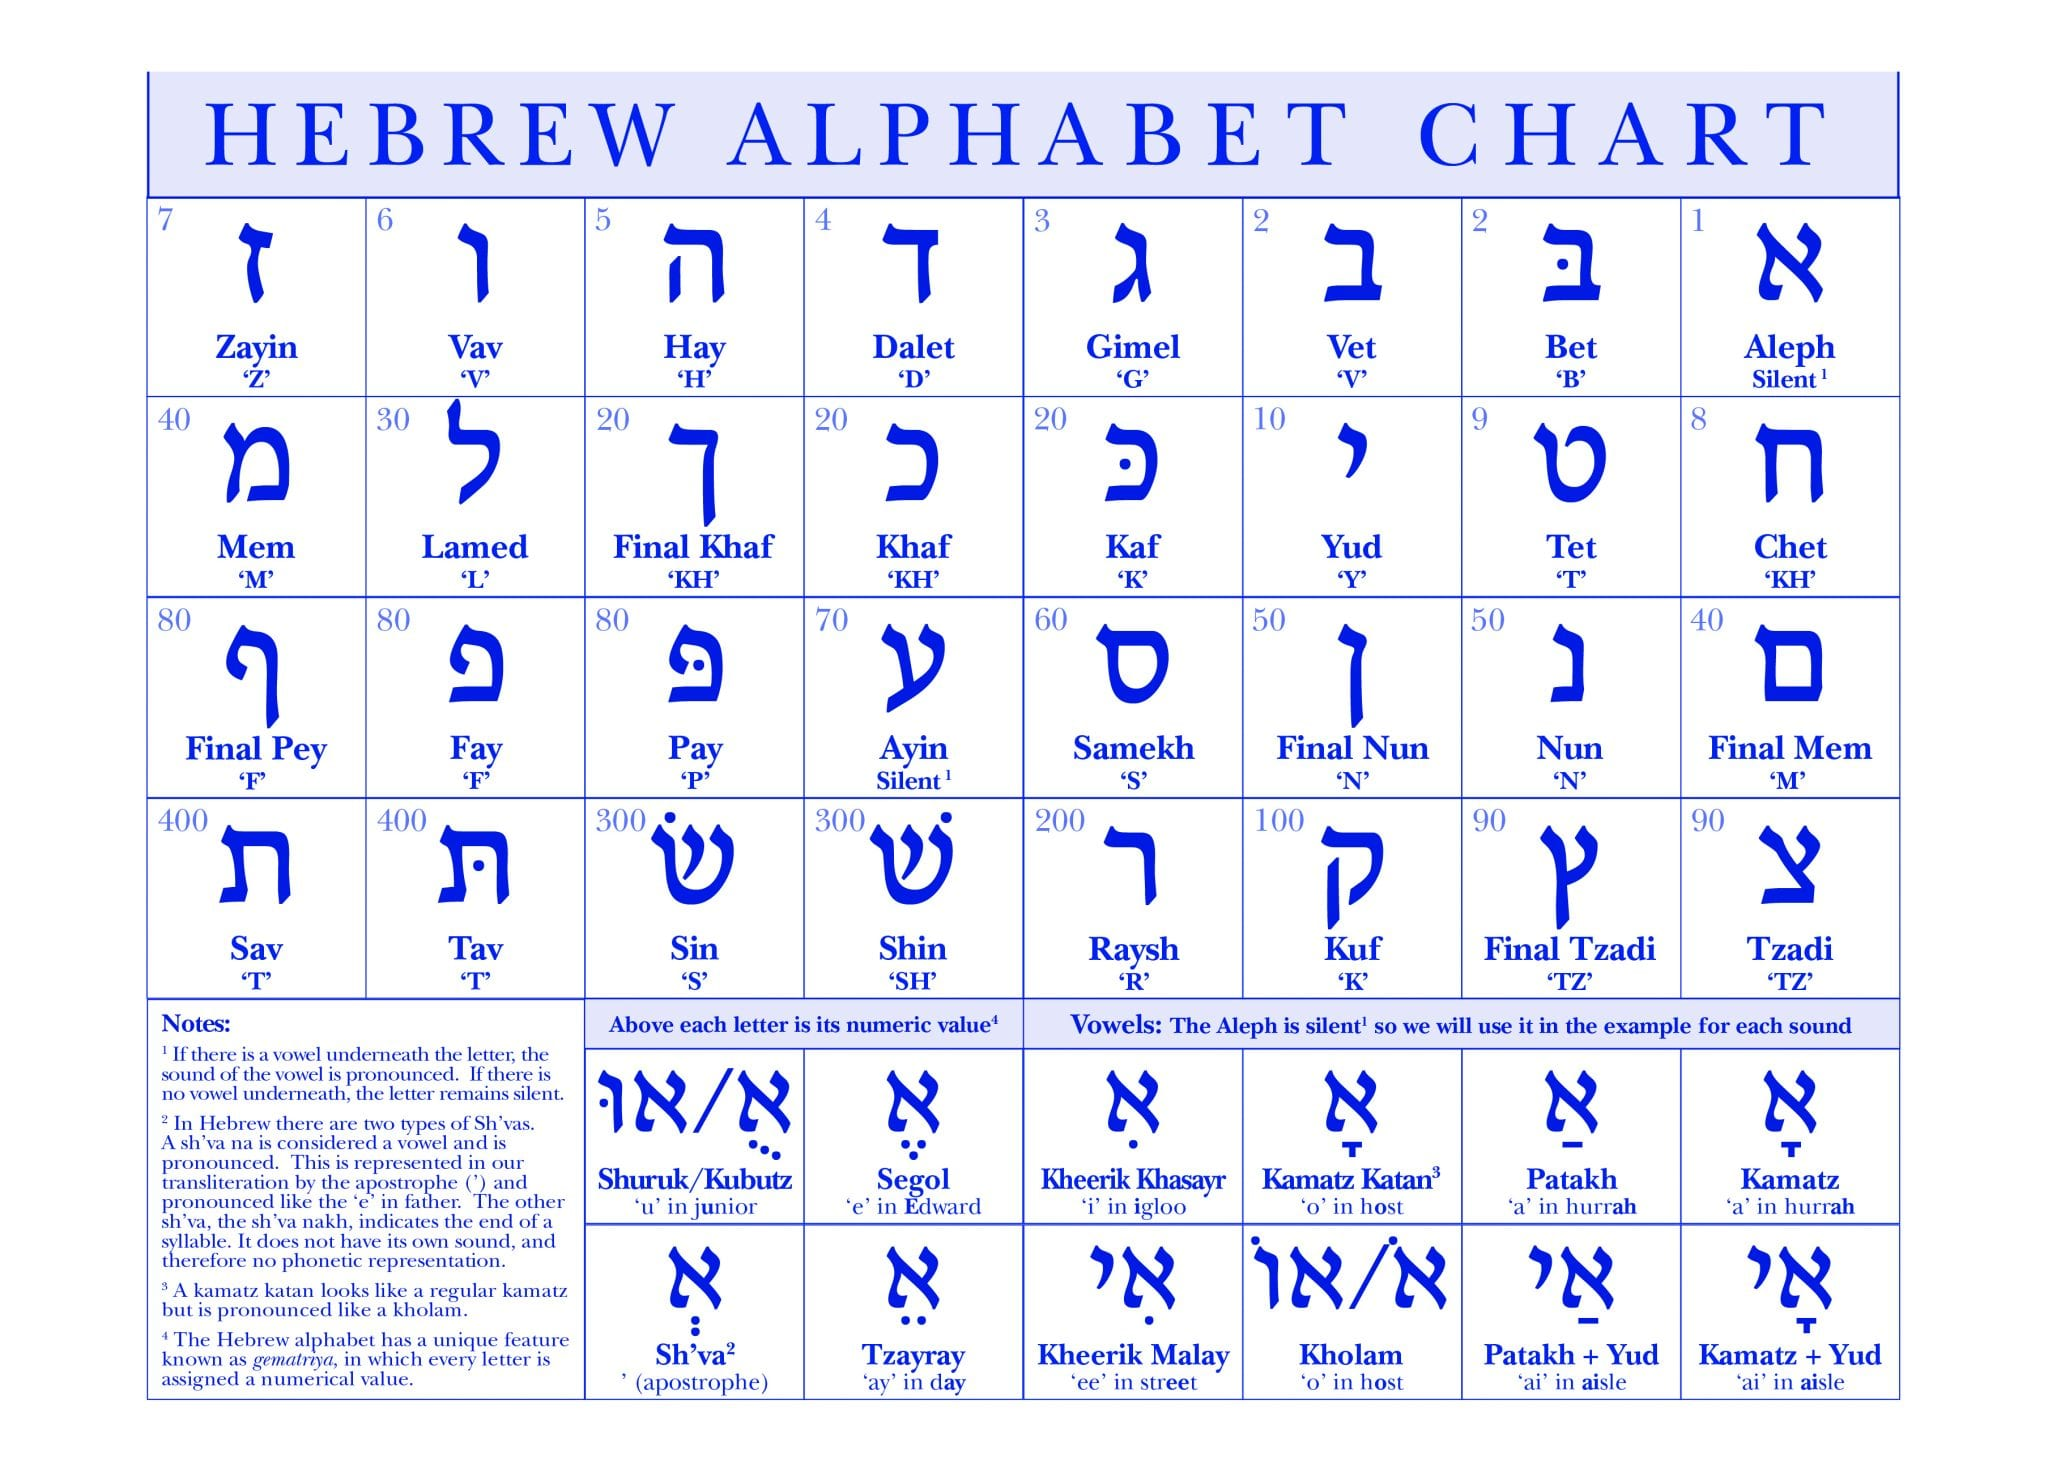 Hebrew Alphabet Chart